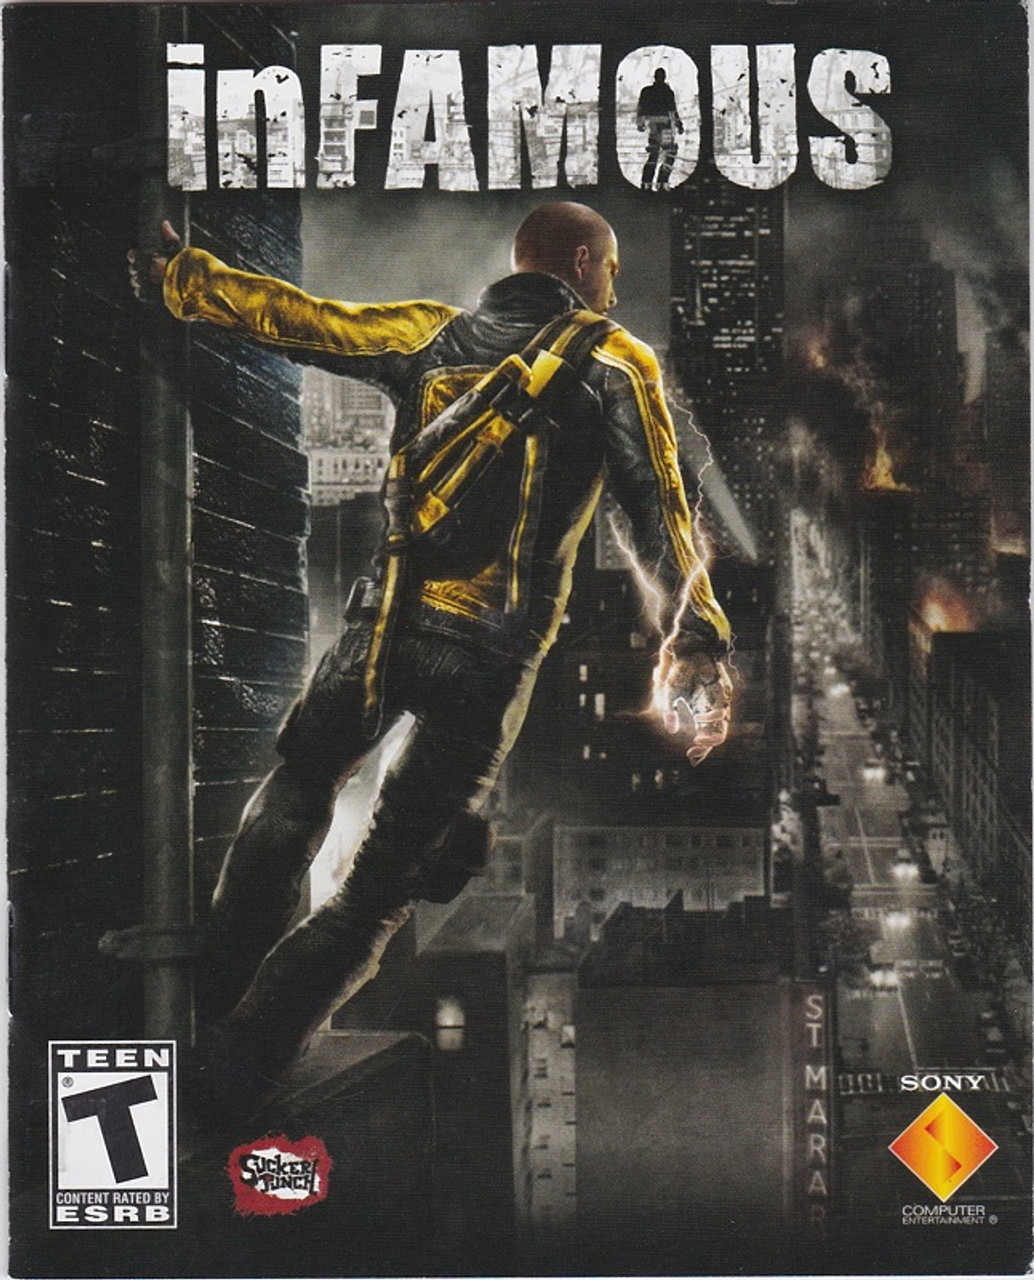 PS3 Manual for inFAMOUS - Gemini Variety - New and Gently Used